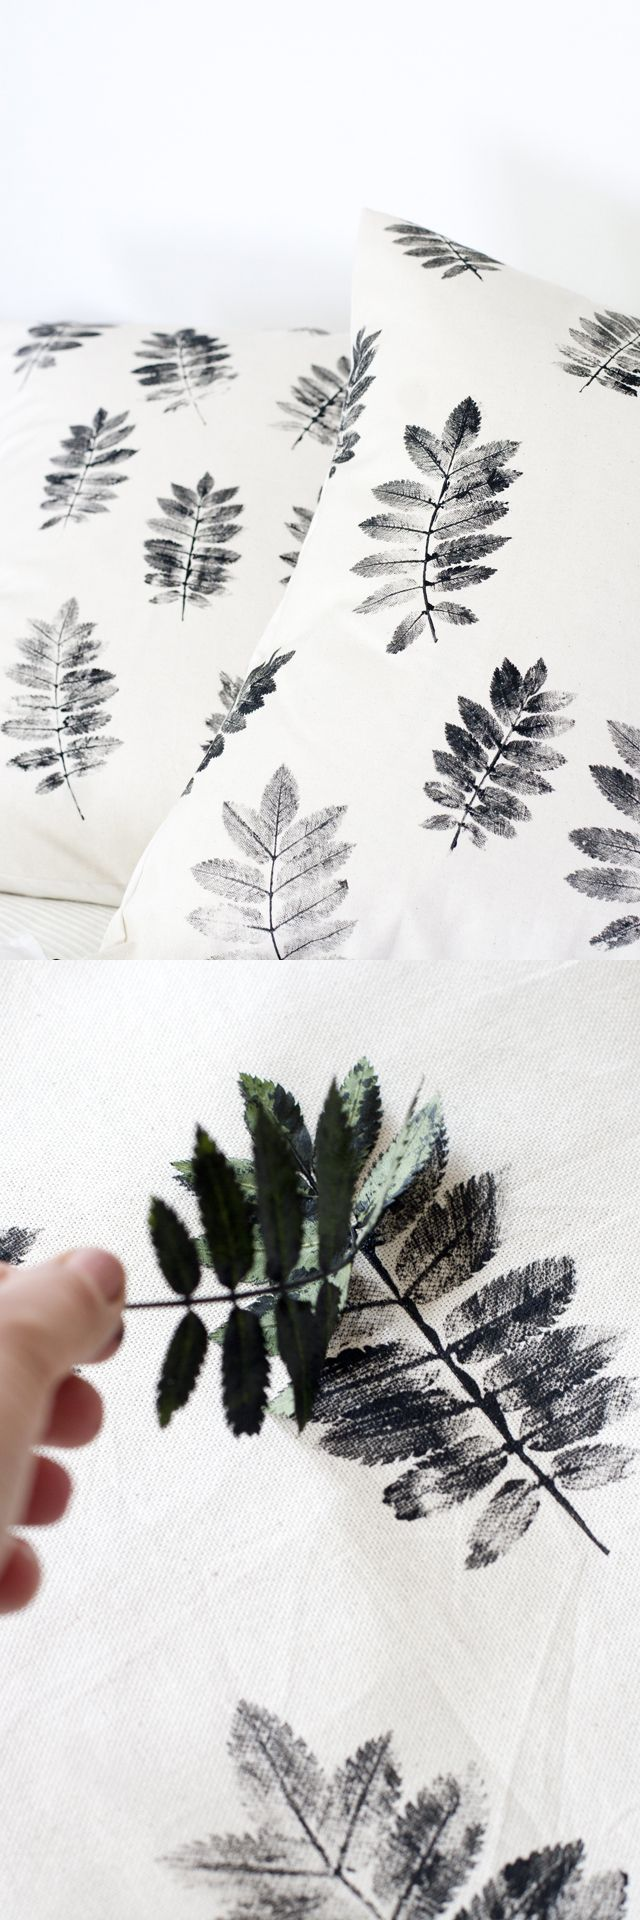 DIY plant print pillows (link: http://ukkonooa.blogspot.fi/2015/07/uudet-paalliset-diy-printed-pillow.html ) diy project, cool diy, minimal diy, coloblock diy, diy projects